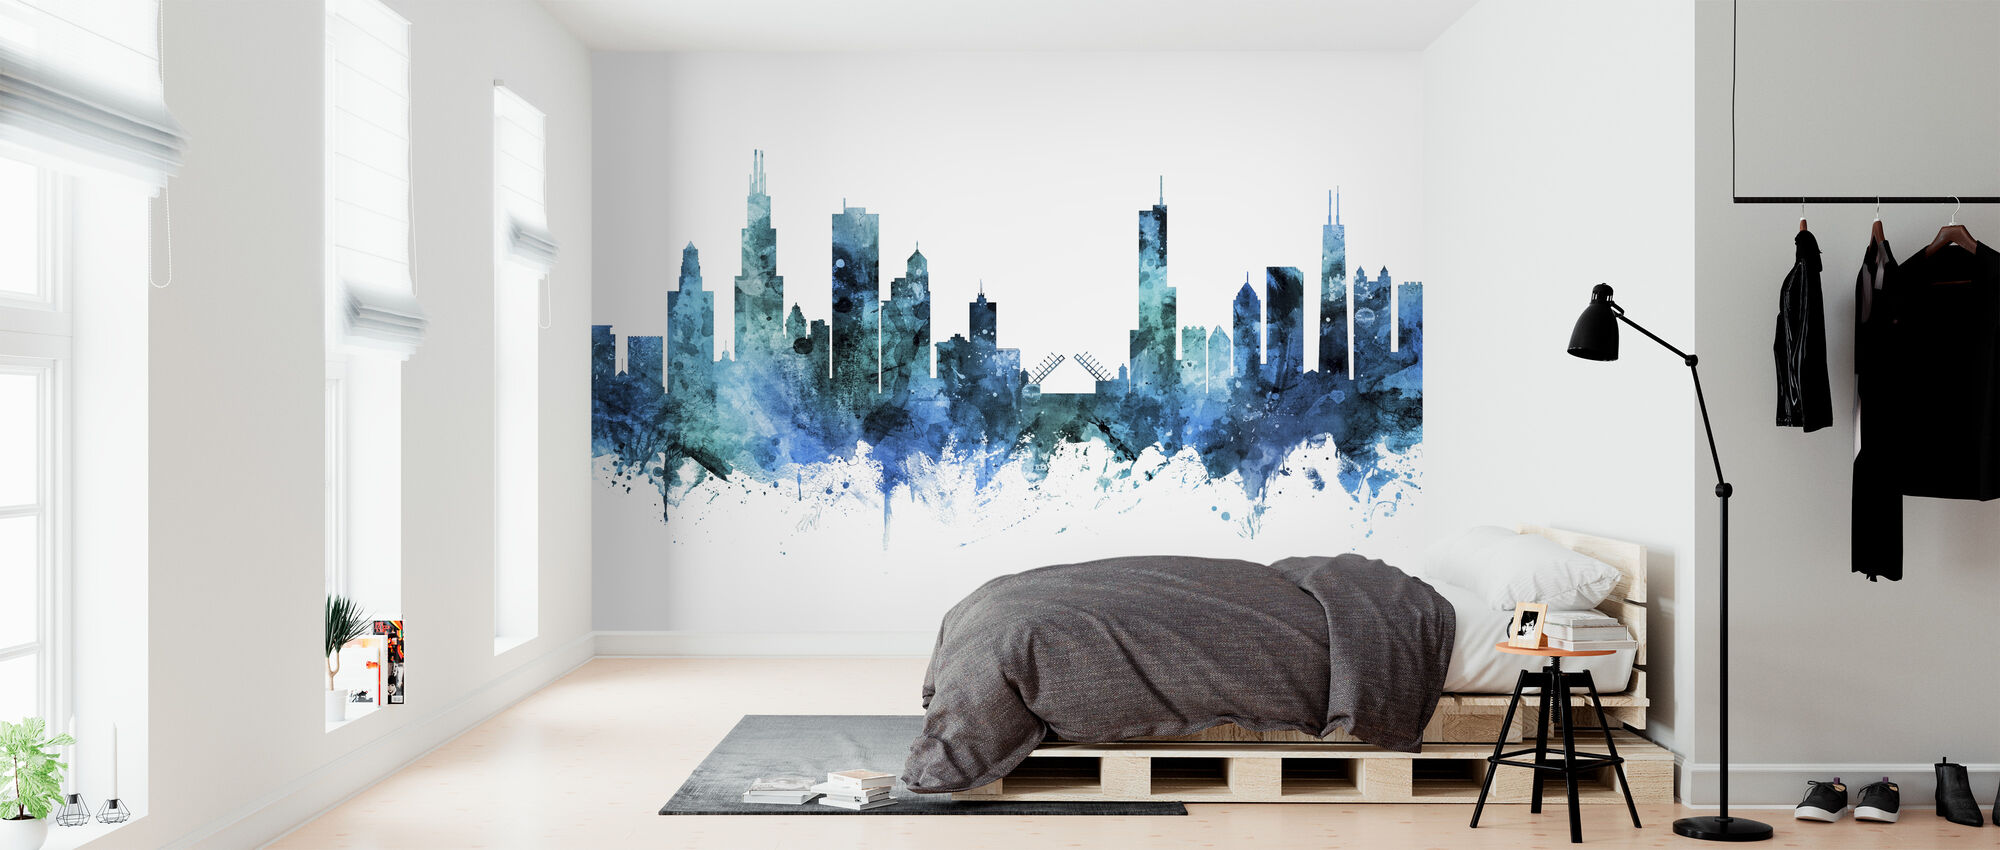 Chicago Illinois Skyline - Behang - Slaapkamer